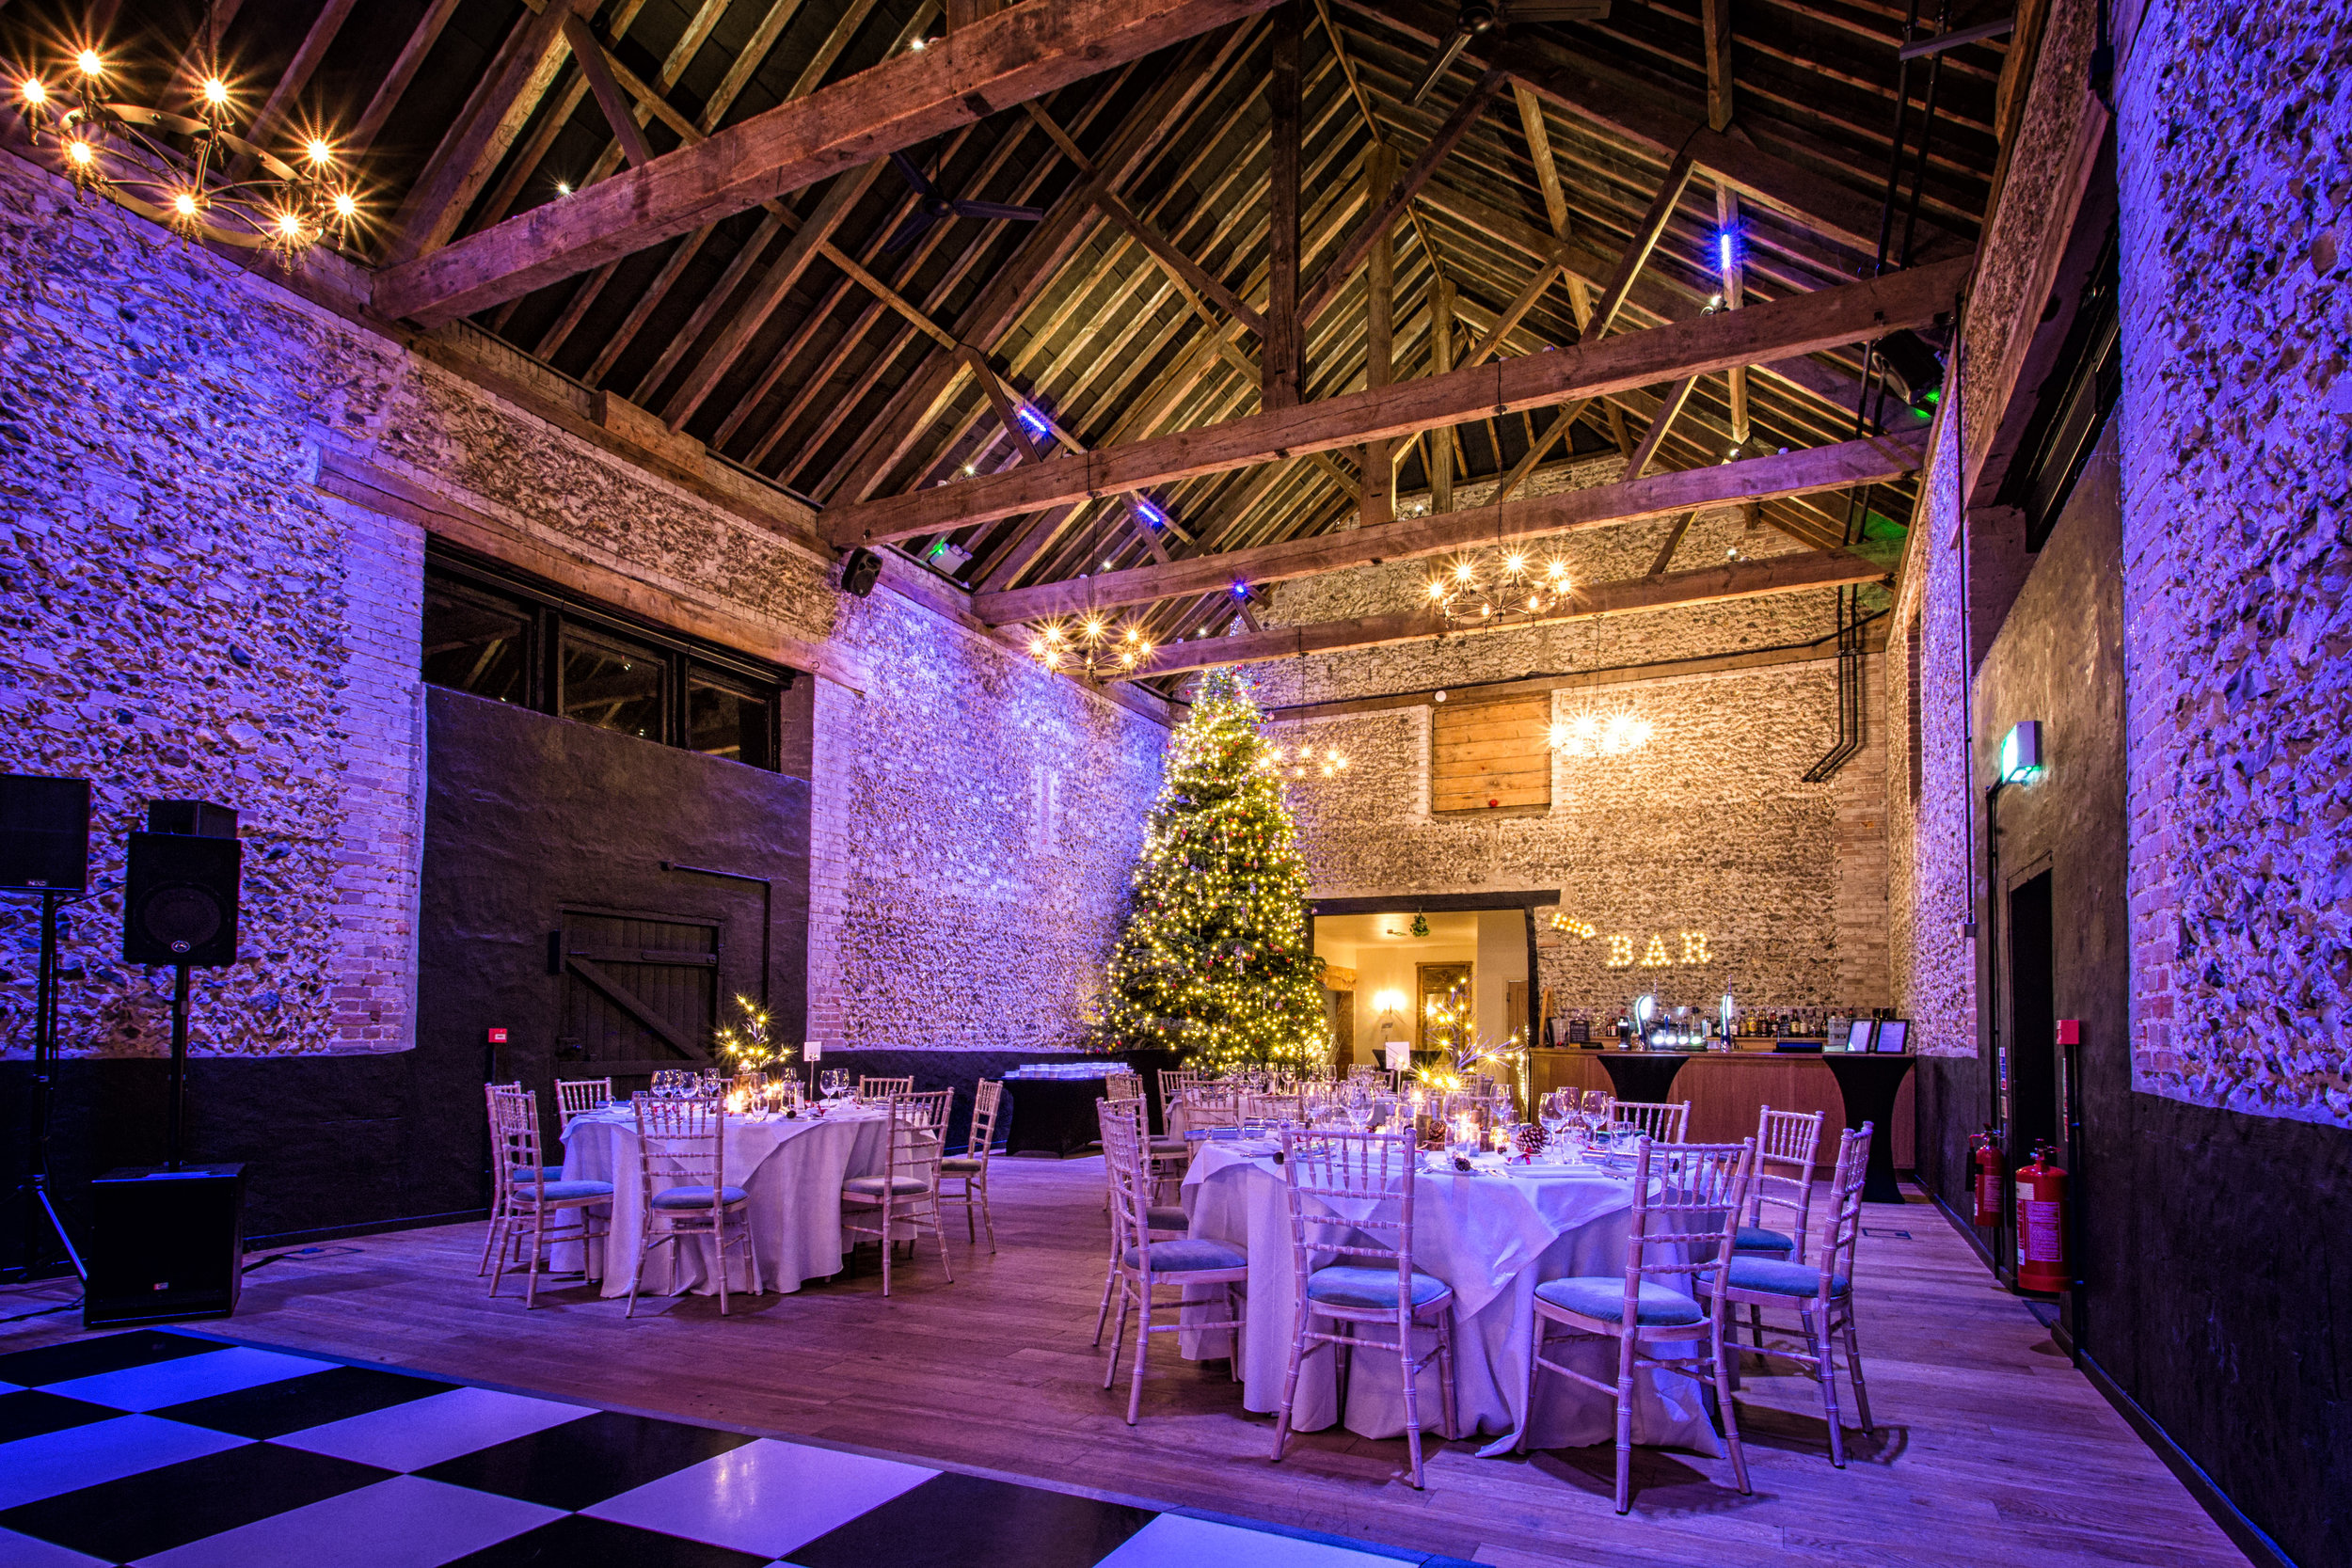 Three course seasonal meal in The Granary Barn